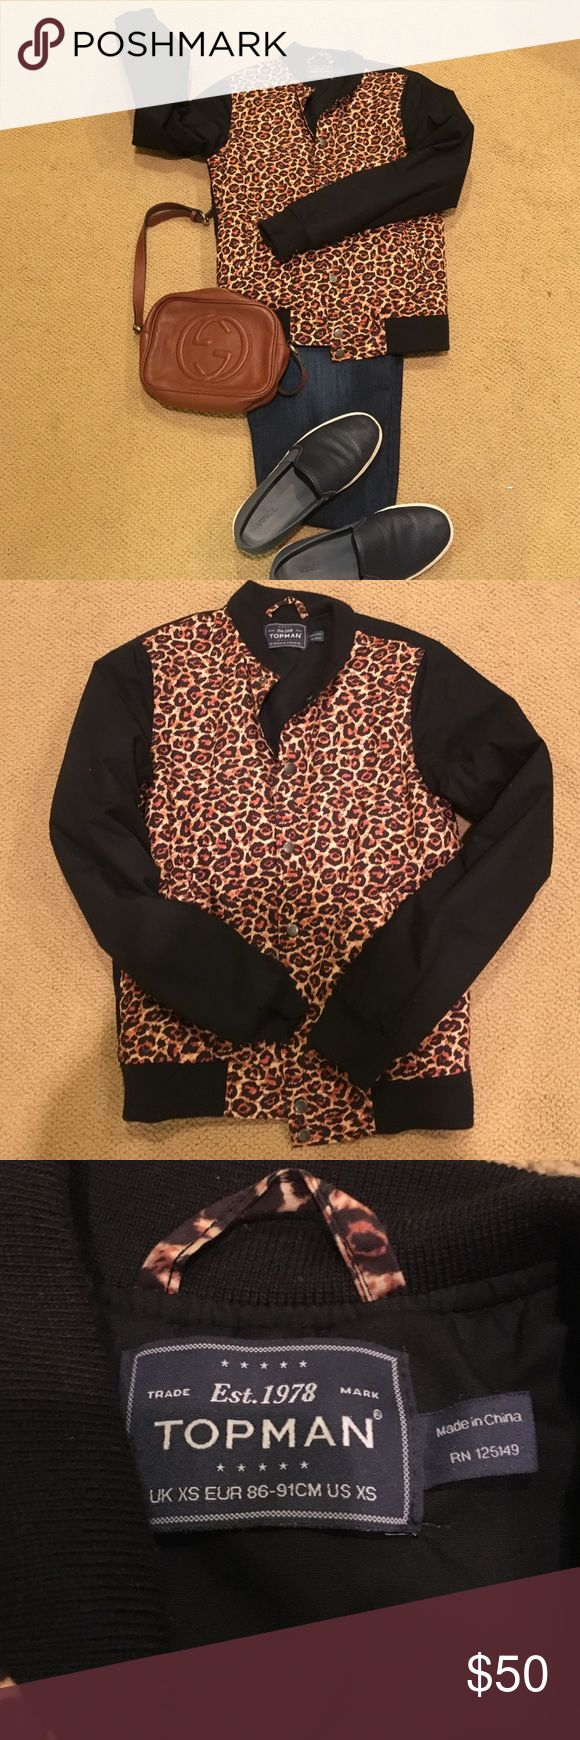 Topman Leopard Varsity Style Jacket Topman Leopard Varsity Style Jacket. This has never been worn, in excellent condition. Very cute and trendy Topman Jacket. Leopard and Black. Open to offers no trades. Topman Jackets & Coats Bomber & Varsity